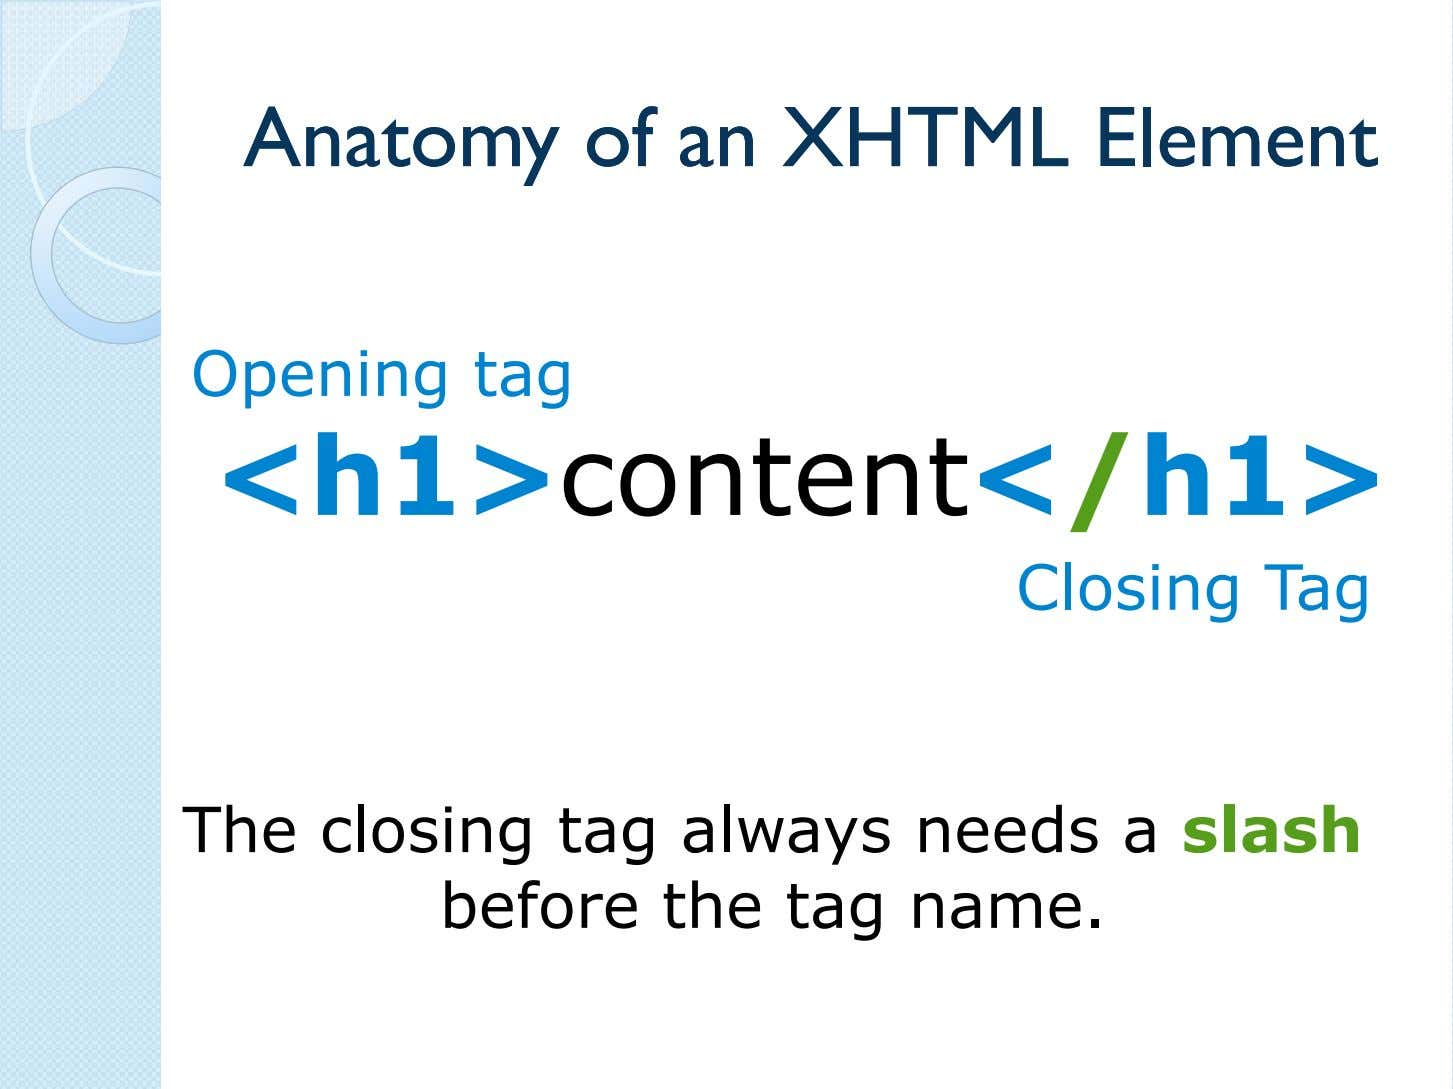 AnatomyAnatomy ofof anan XHTMLXHTML ElementElement Opening tag <h1>content</h1> Closing Tag The